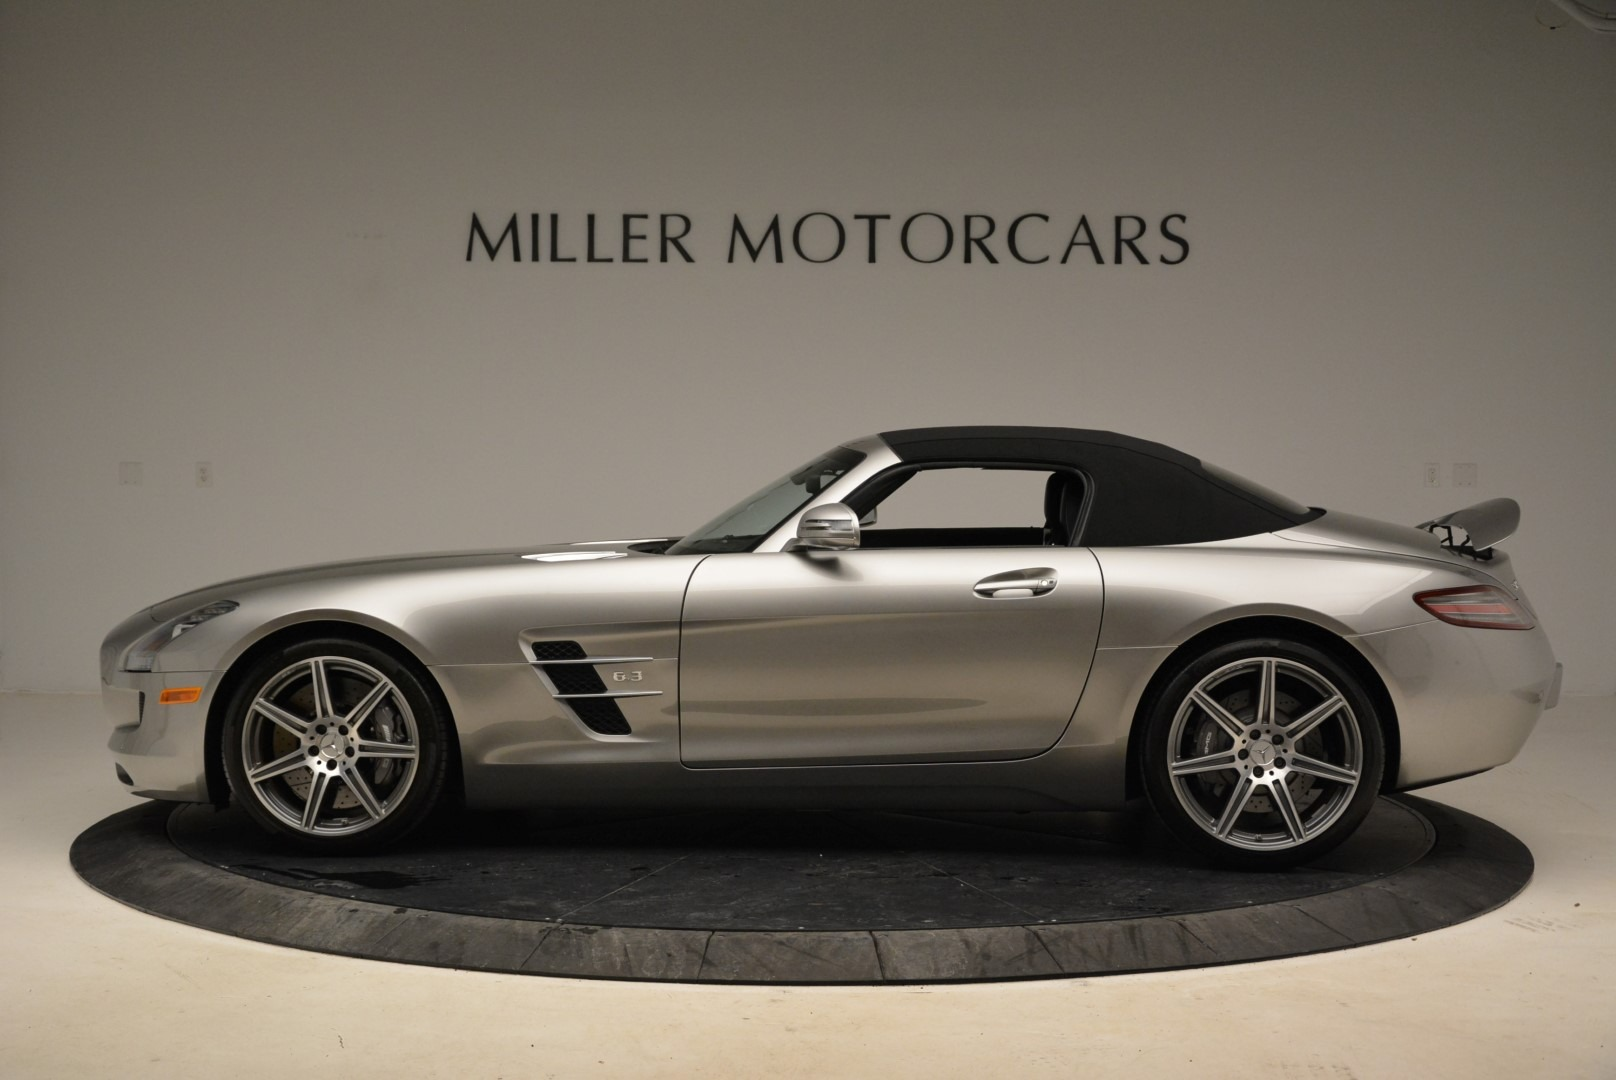 Used 2012 Mercedes-Benz SLS AMG  For Sale In Westport, CT 2068_p14